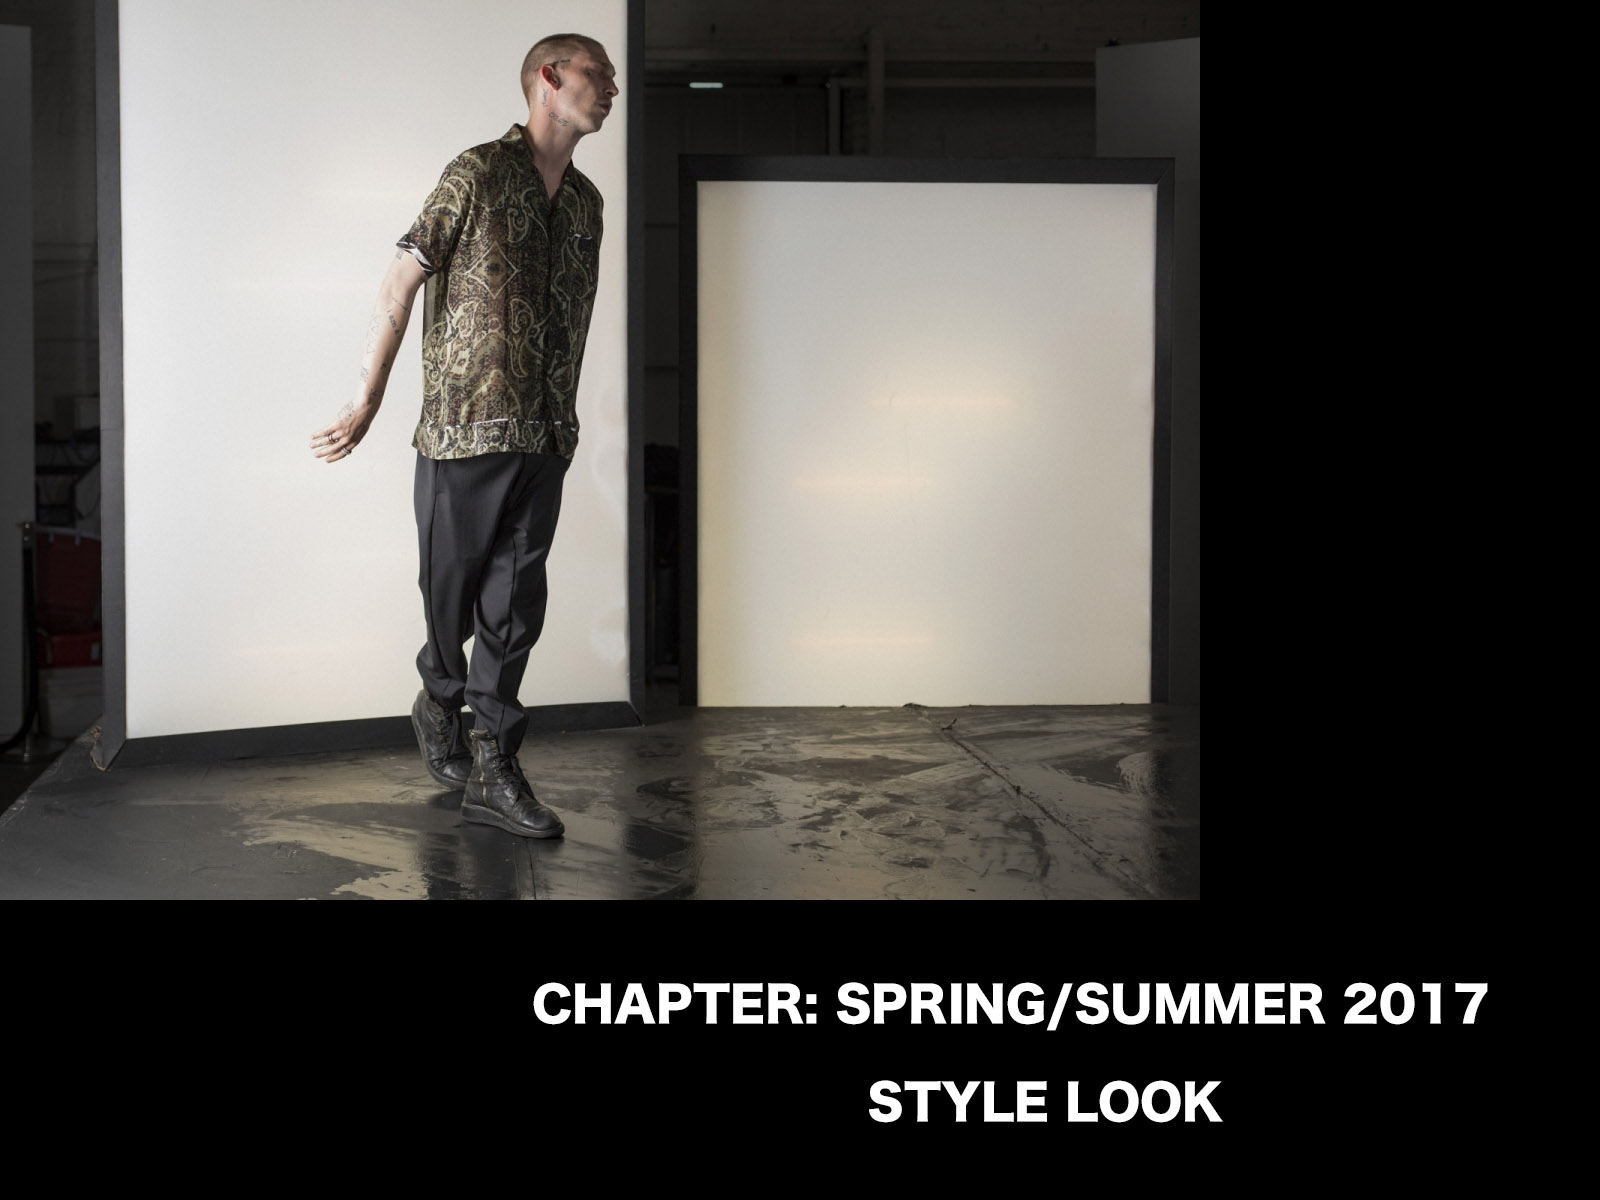 CHAPTER SPRING SUMMER 2017 STYLE LOOK